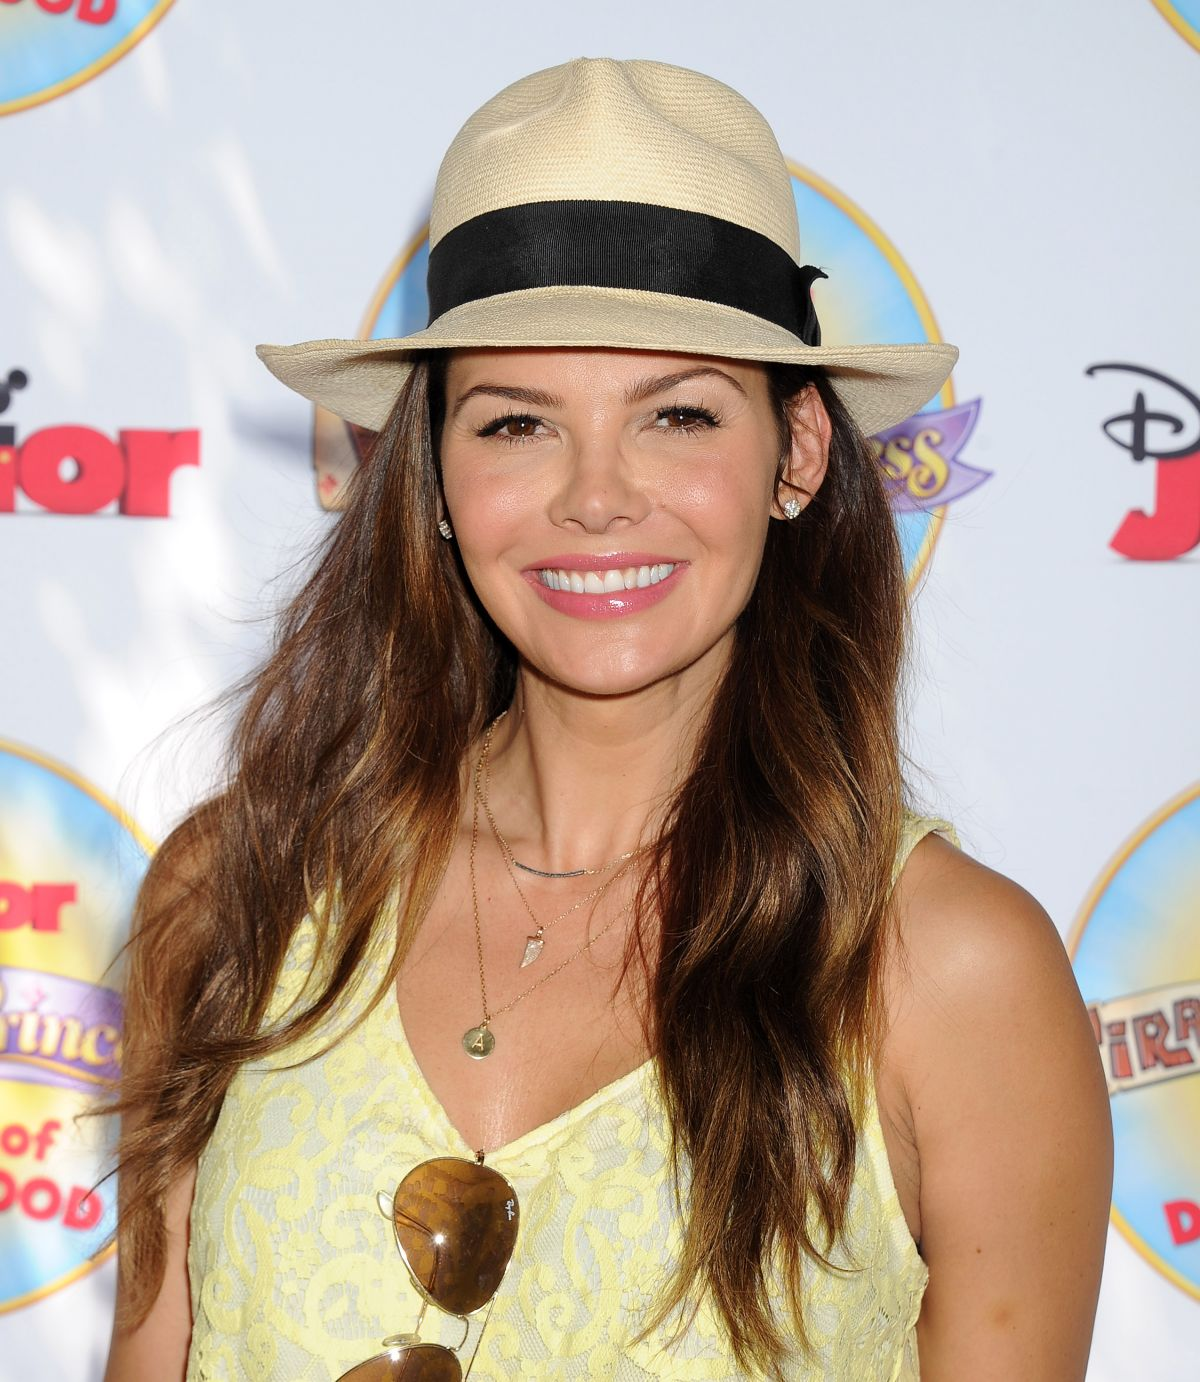 ALI LANDRY at Pirate and Princess: Power of Doing Good Tour in Pasadena